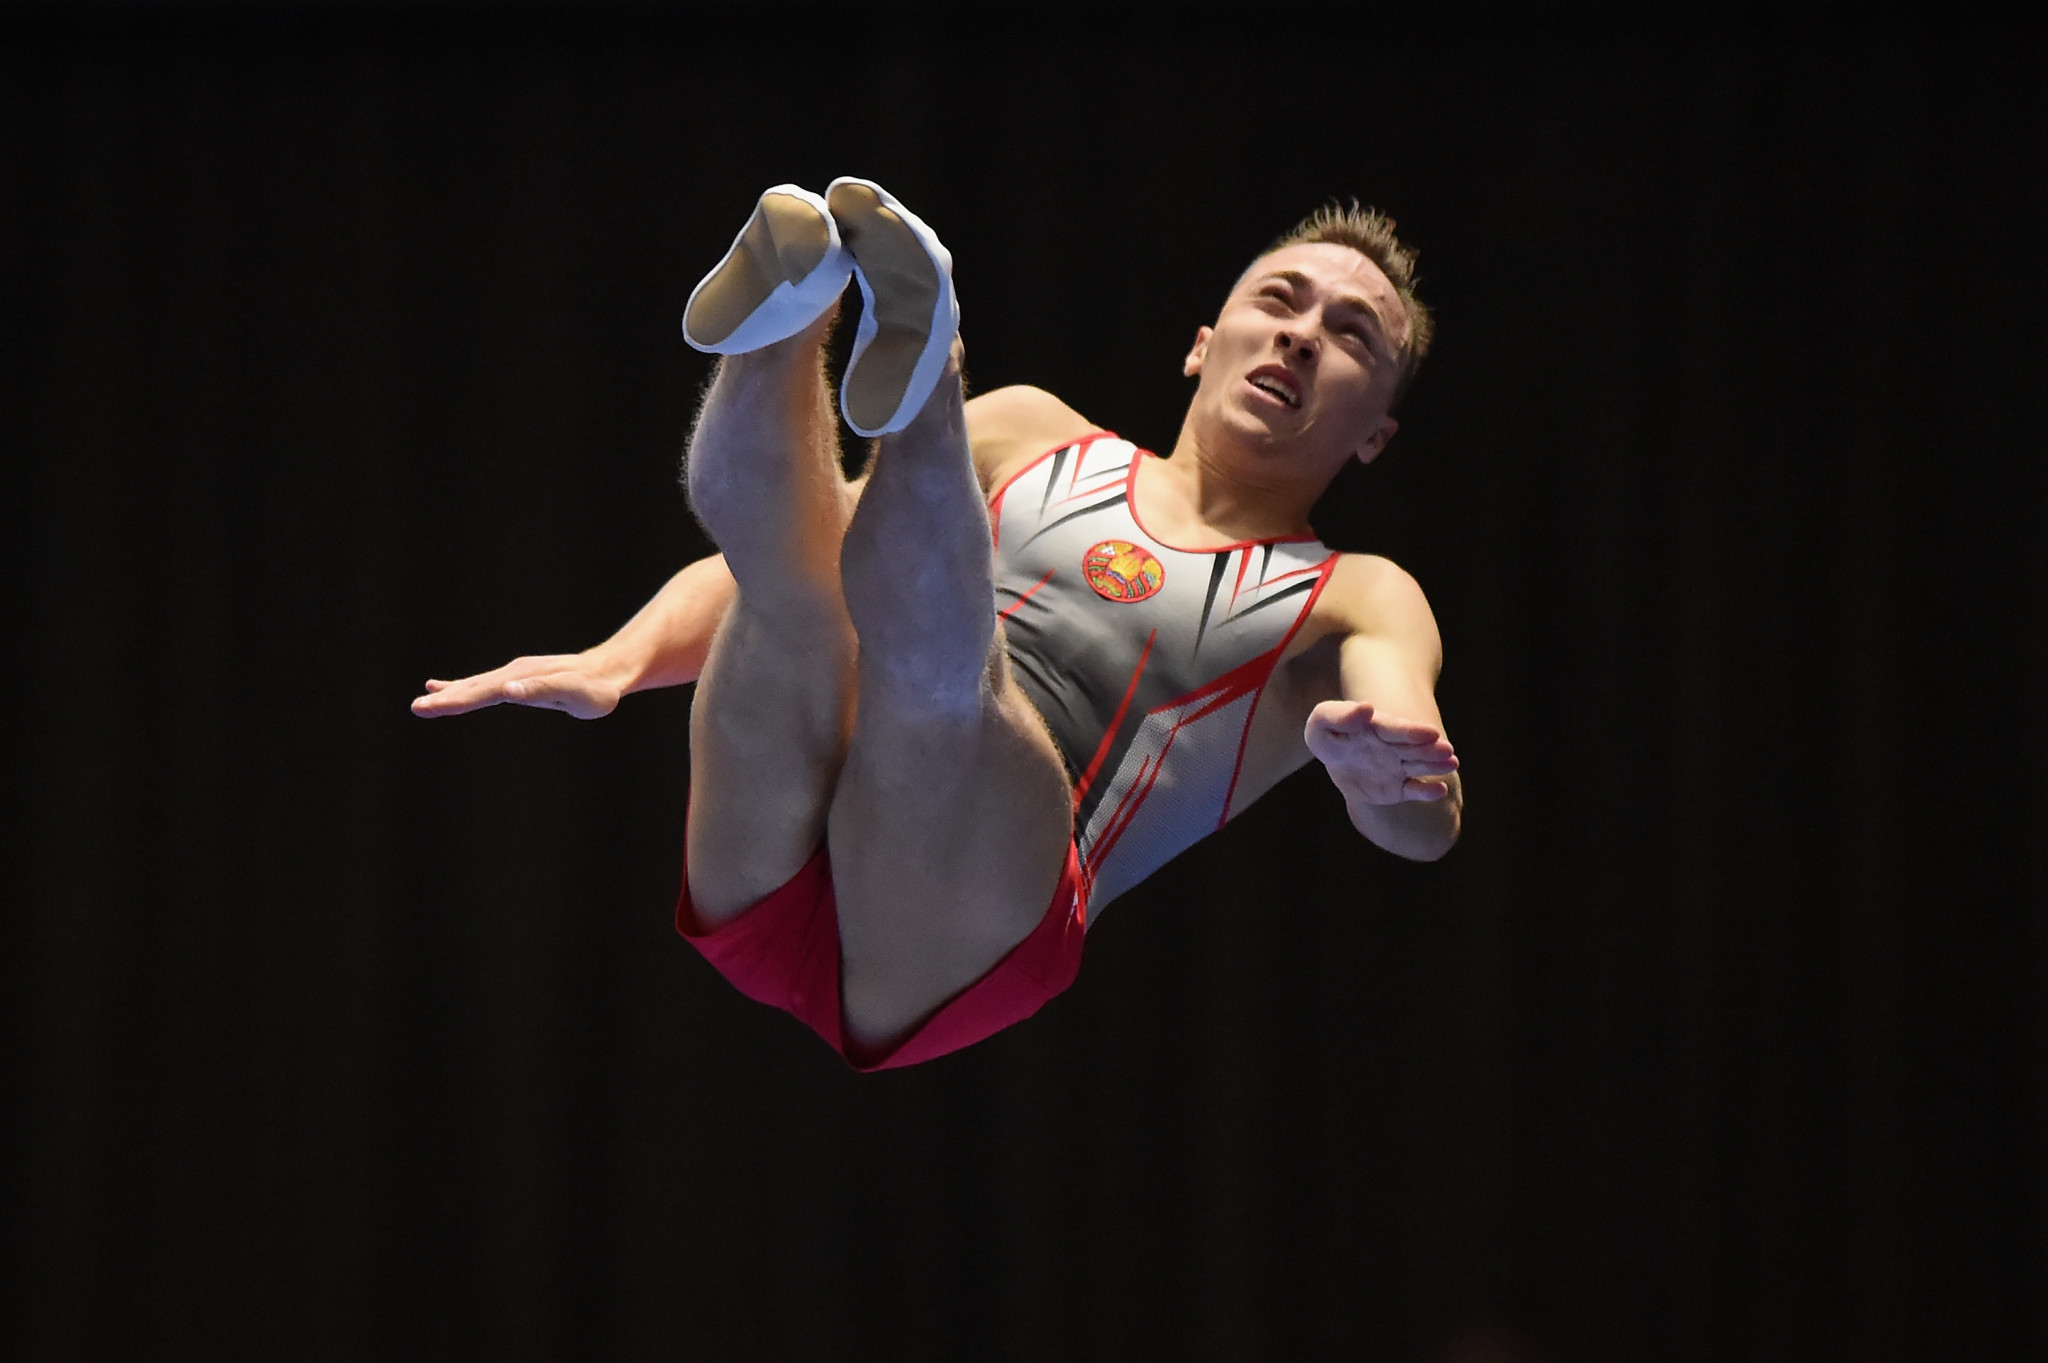 Olympic champion Hancharou tops men's qualifying at FIG Trampoline World Cup in Baku